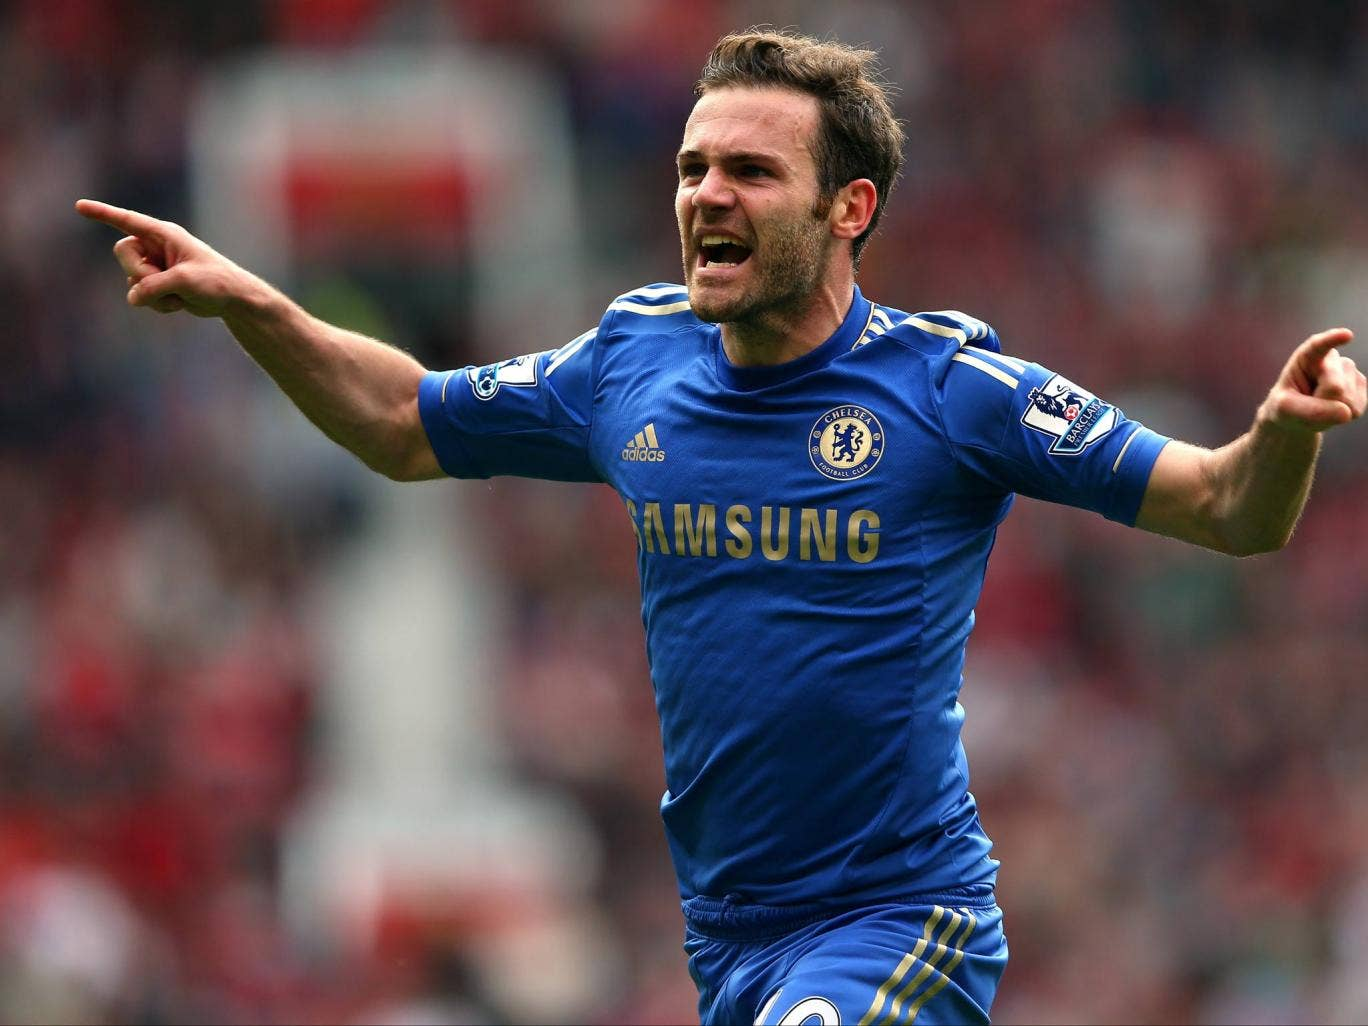 Juan Mata celebrates as his strike deflected off Phil Jones to give Chelsea a 1-0 win against Manchester United